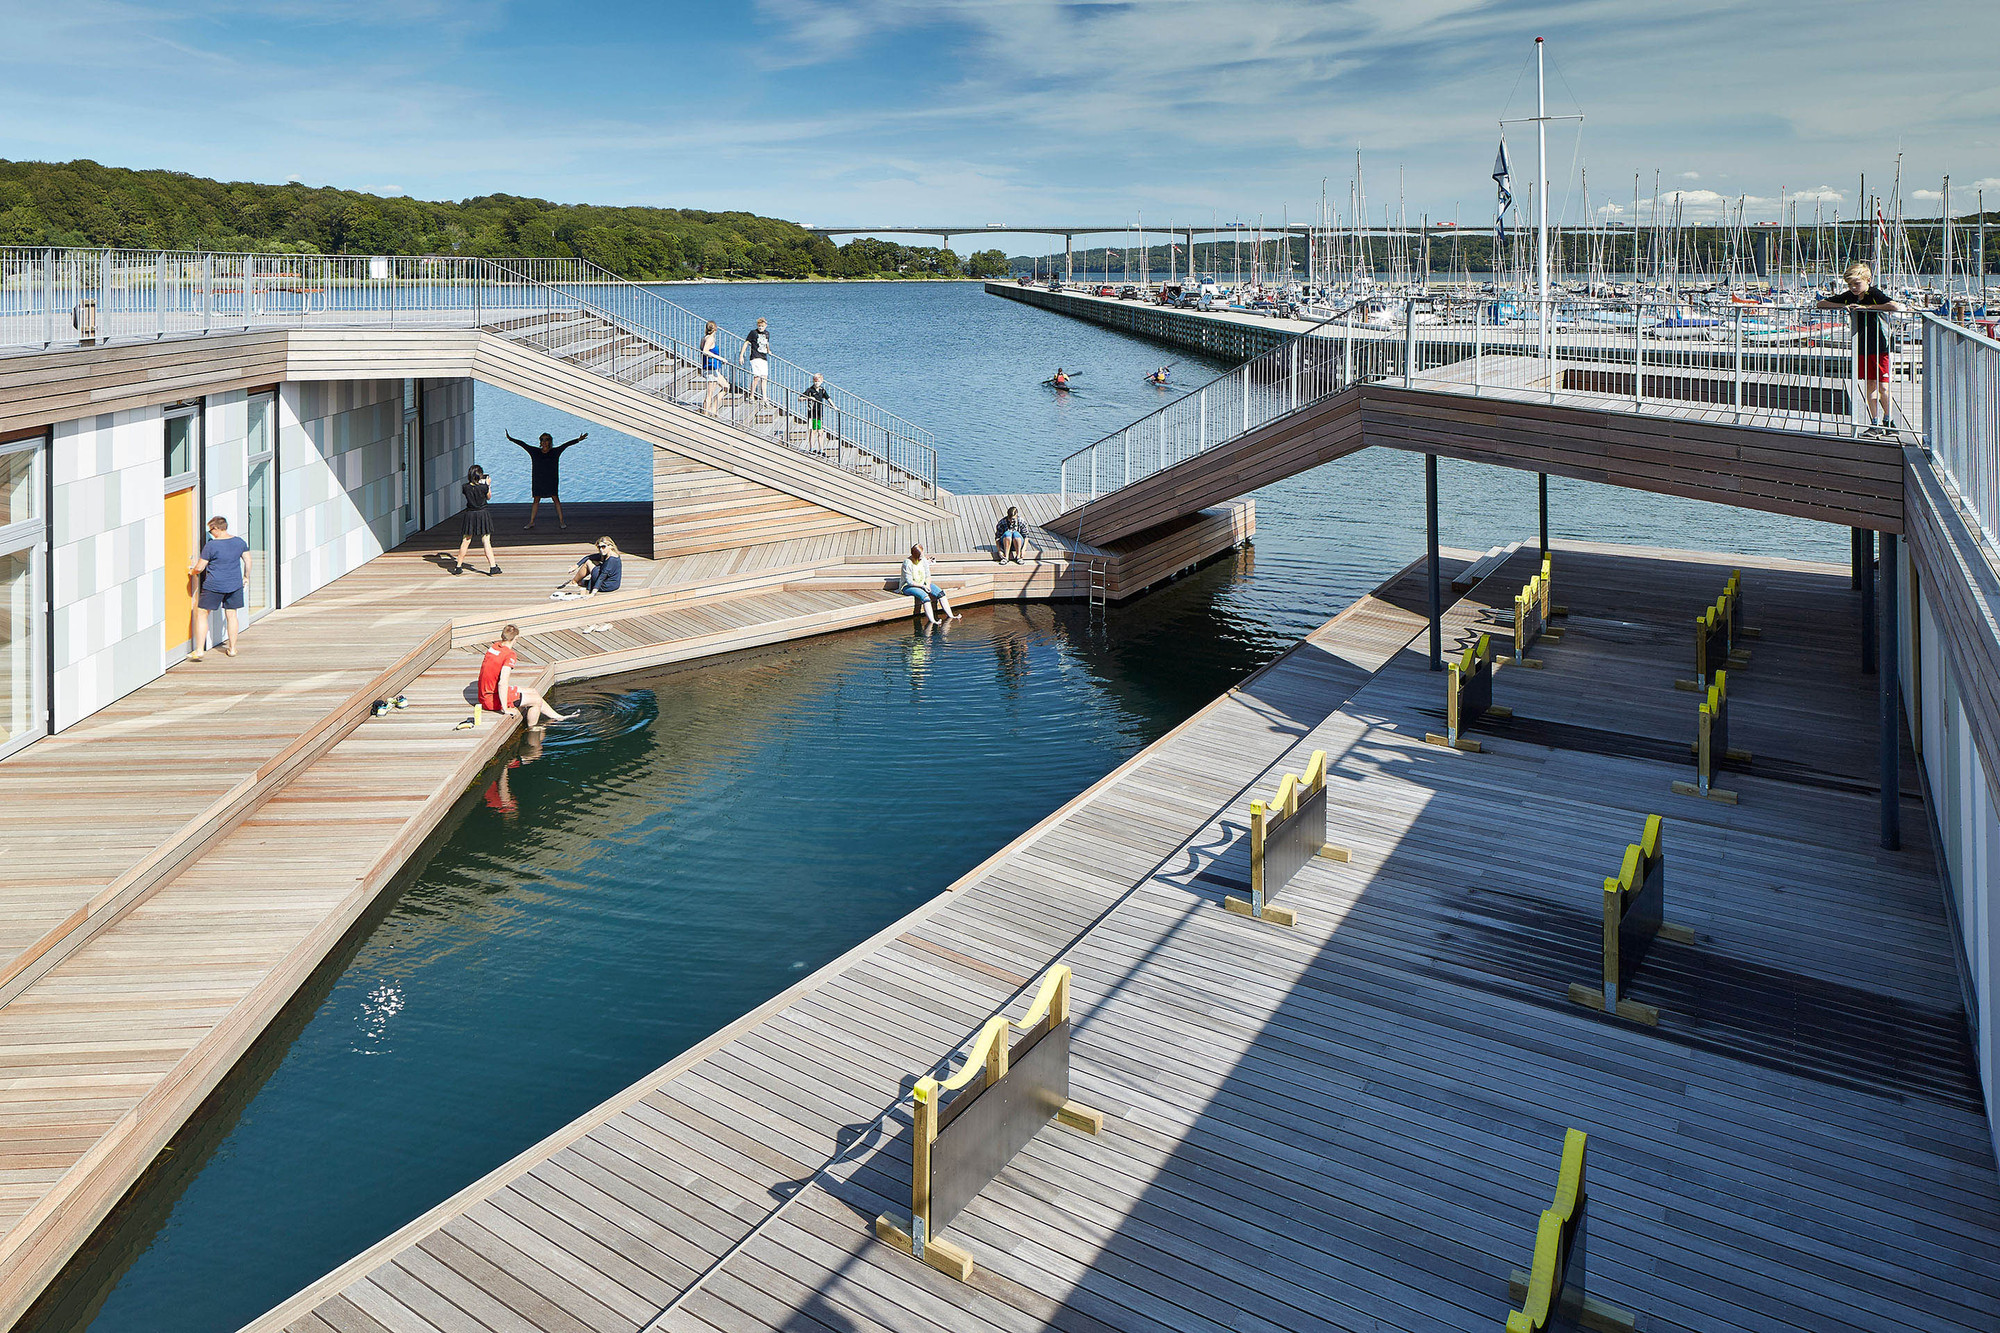 Canoe Piscina Gallery Of The Floating Kayak Club Force4 Architects 12